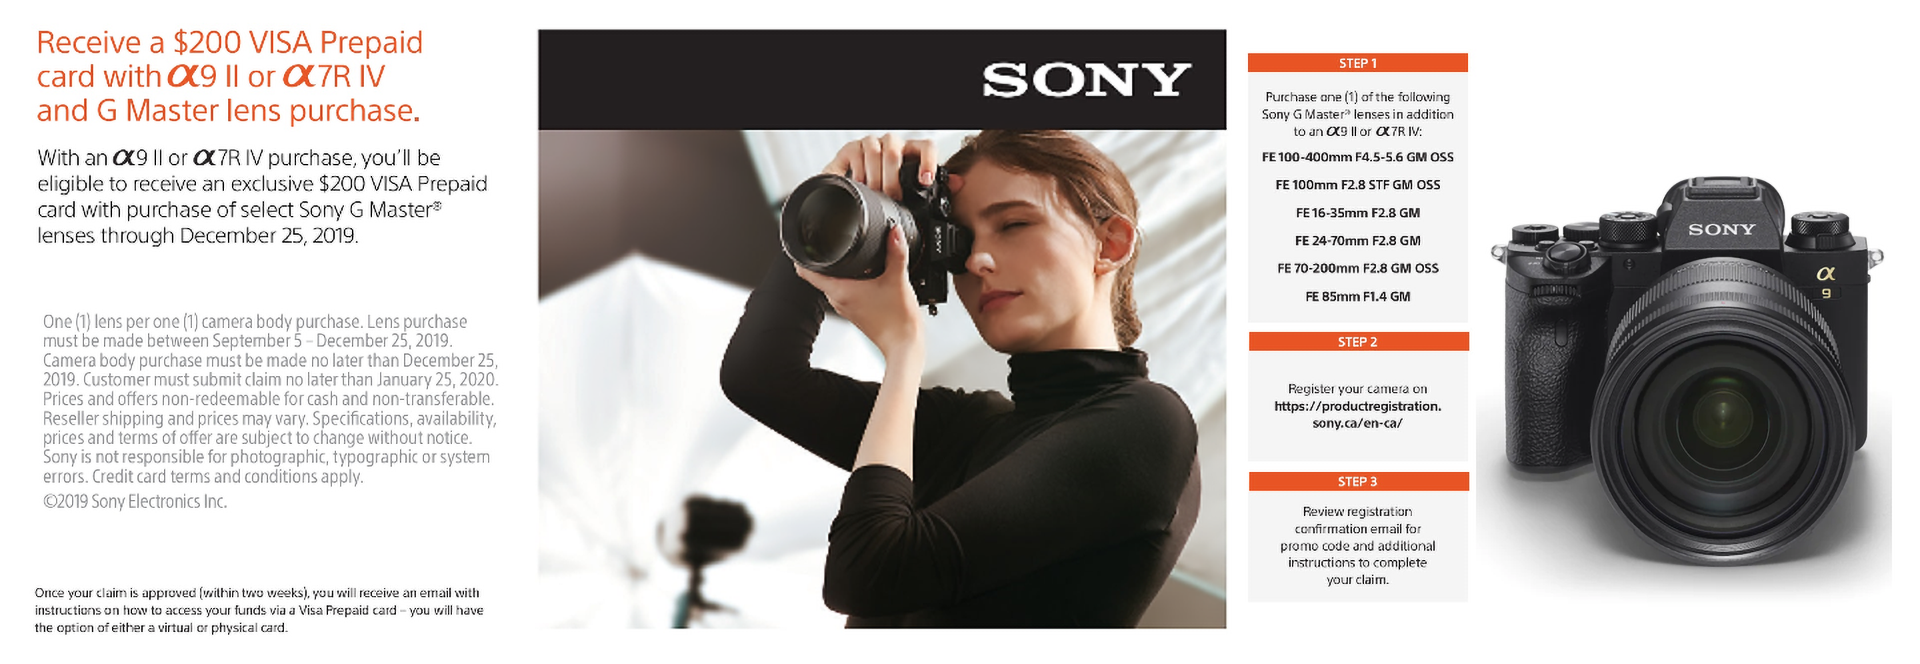 sony A9ii A7R iv and lens deal